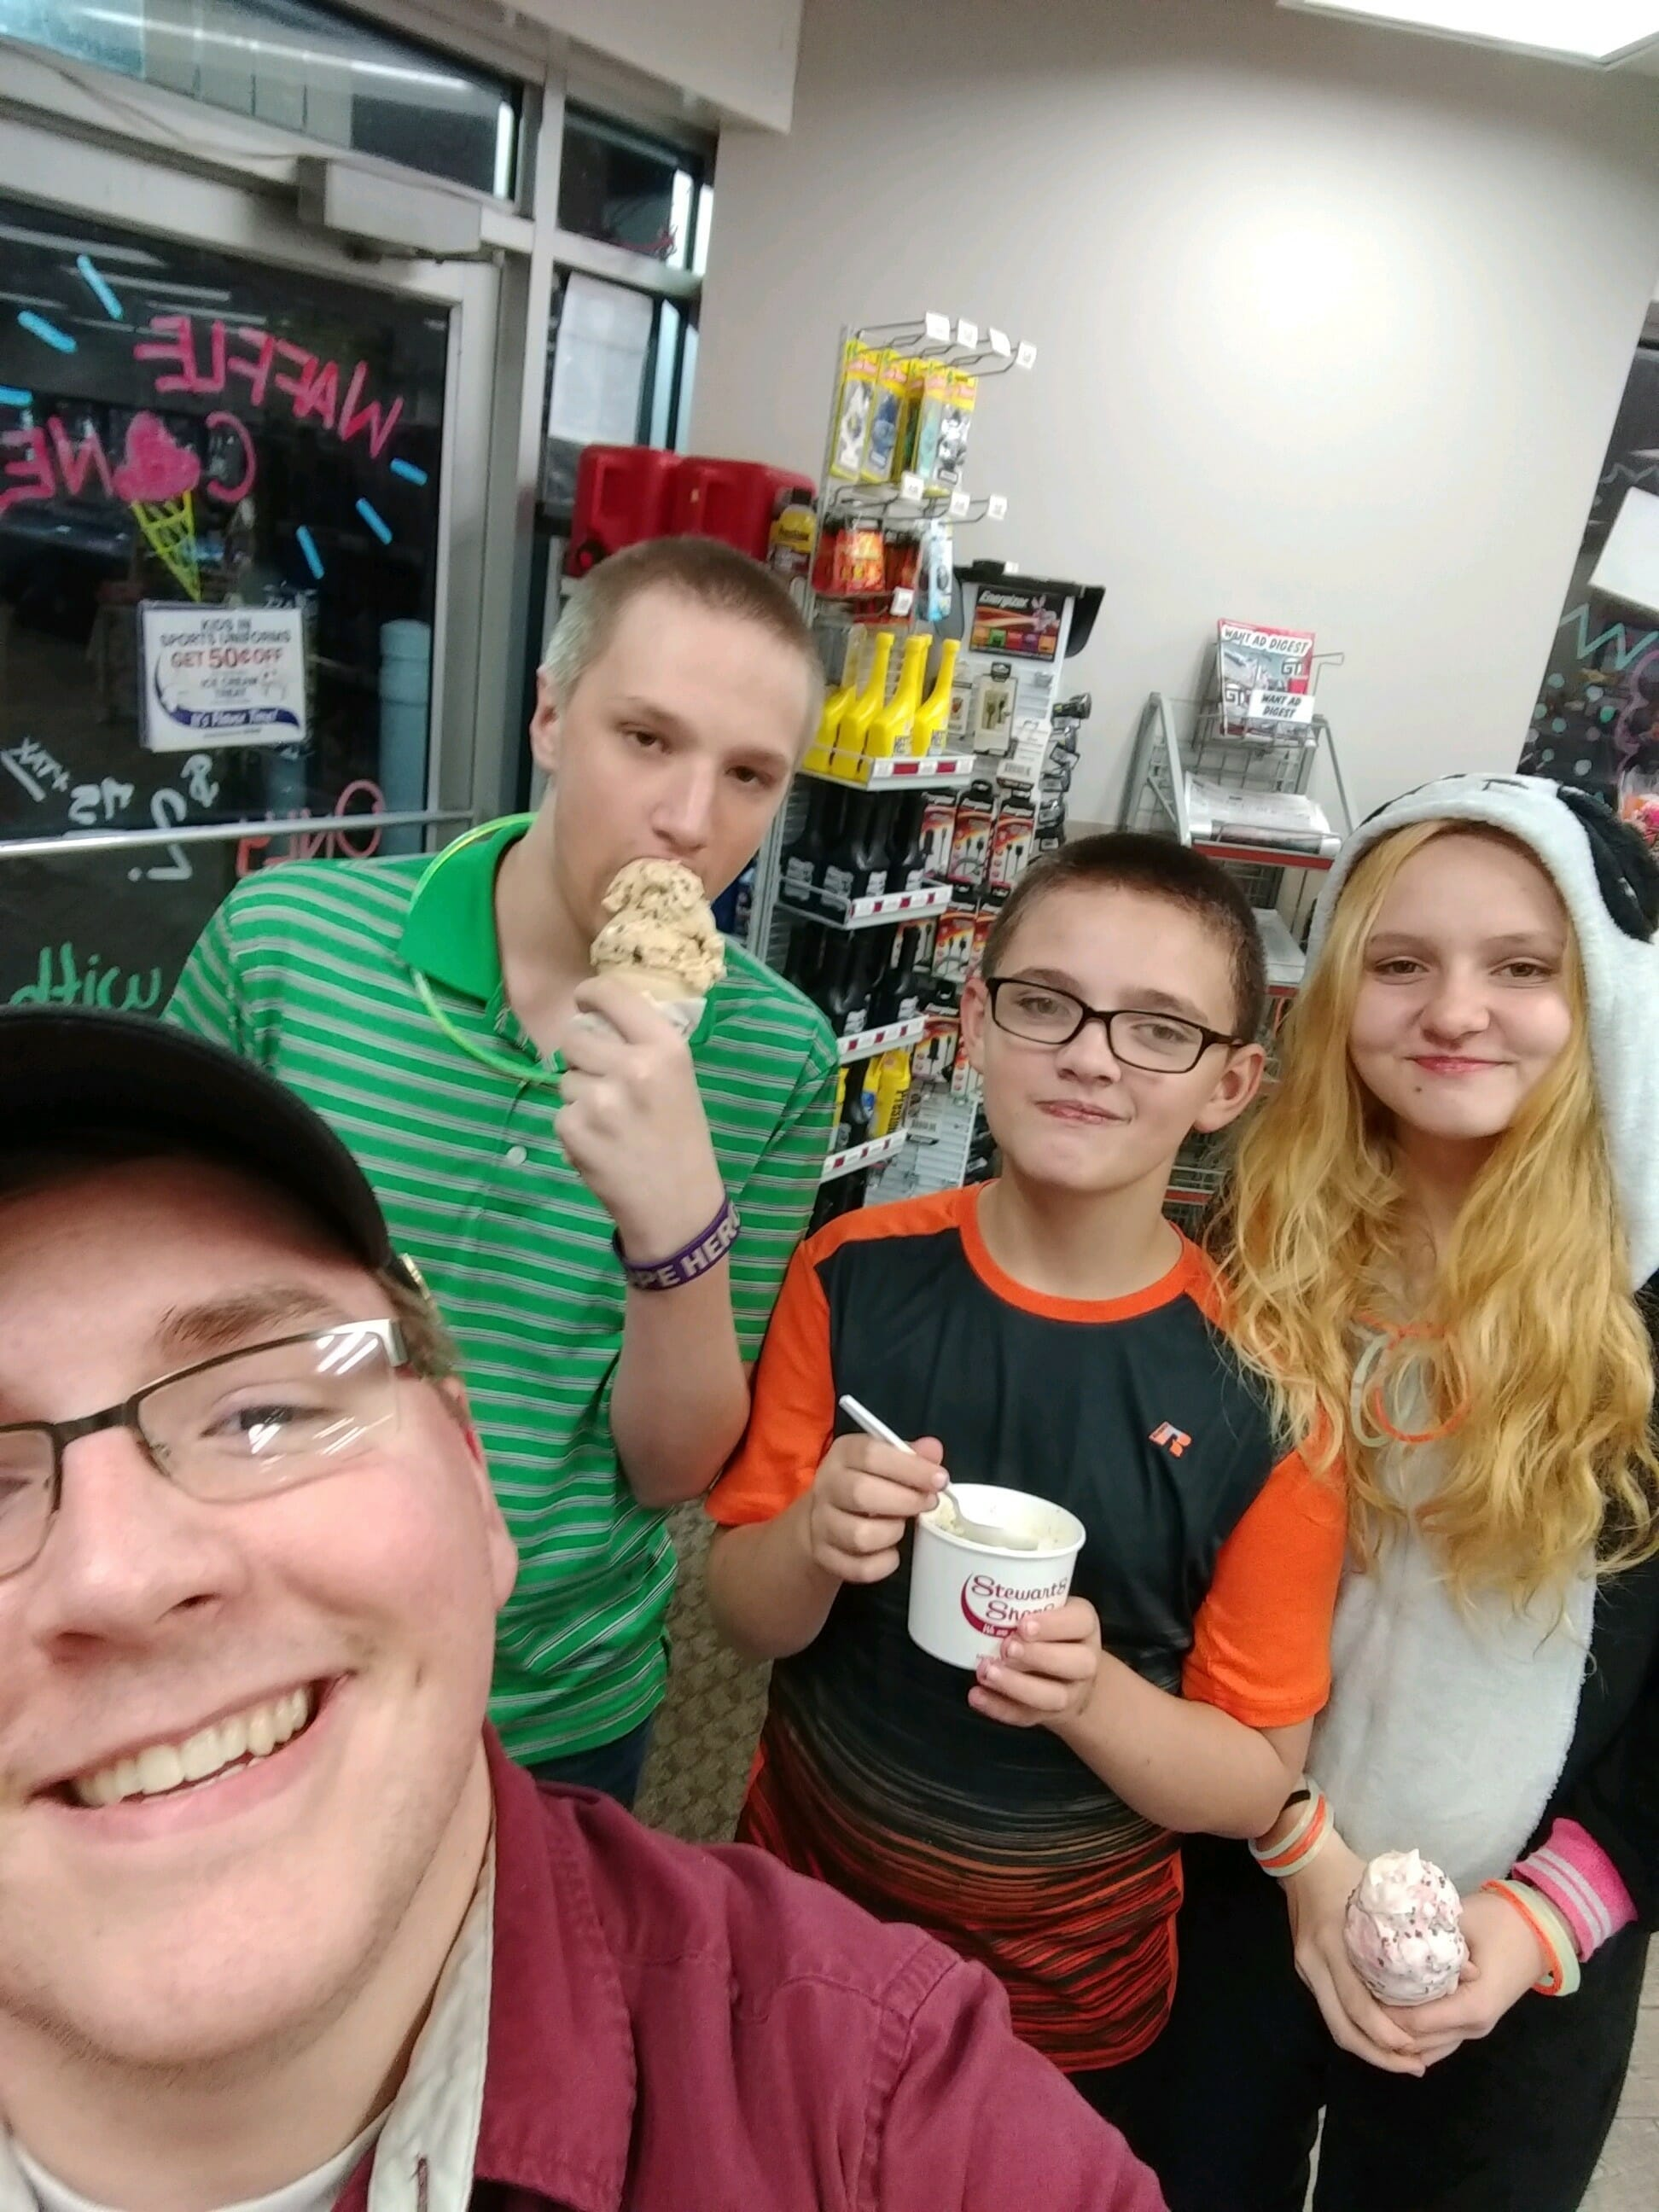 stewarts partner and fans eating ice cream